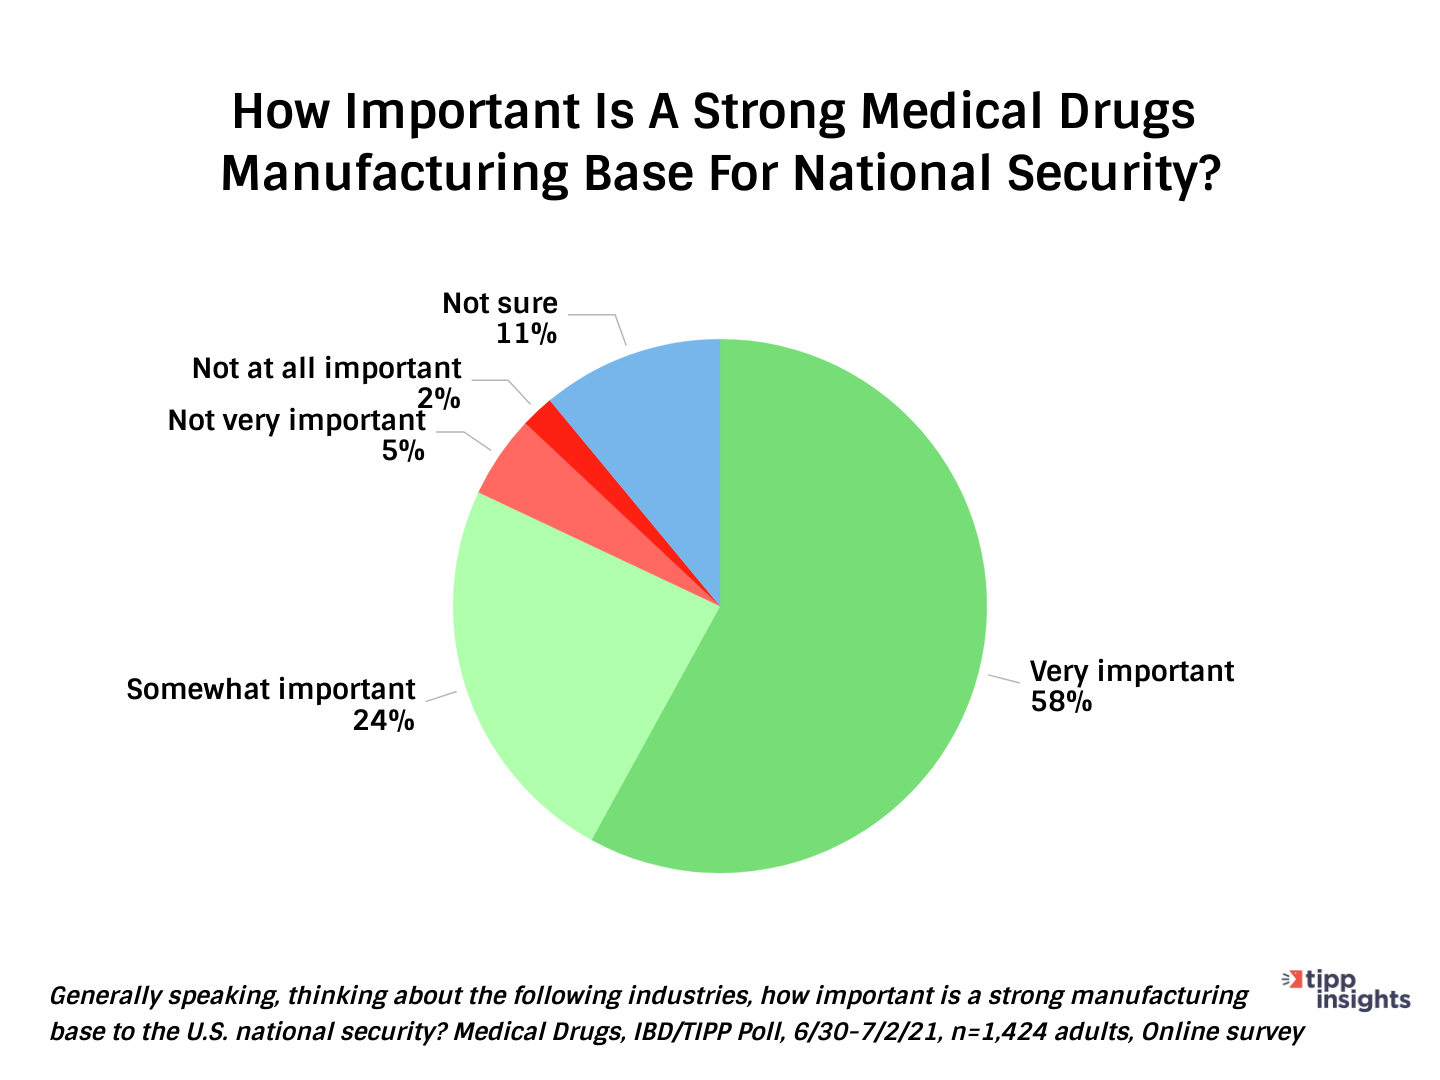 Importance of a strong drugs manufacturing base for national security